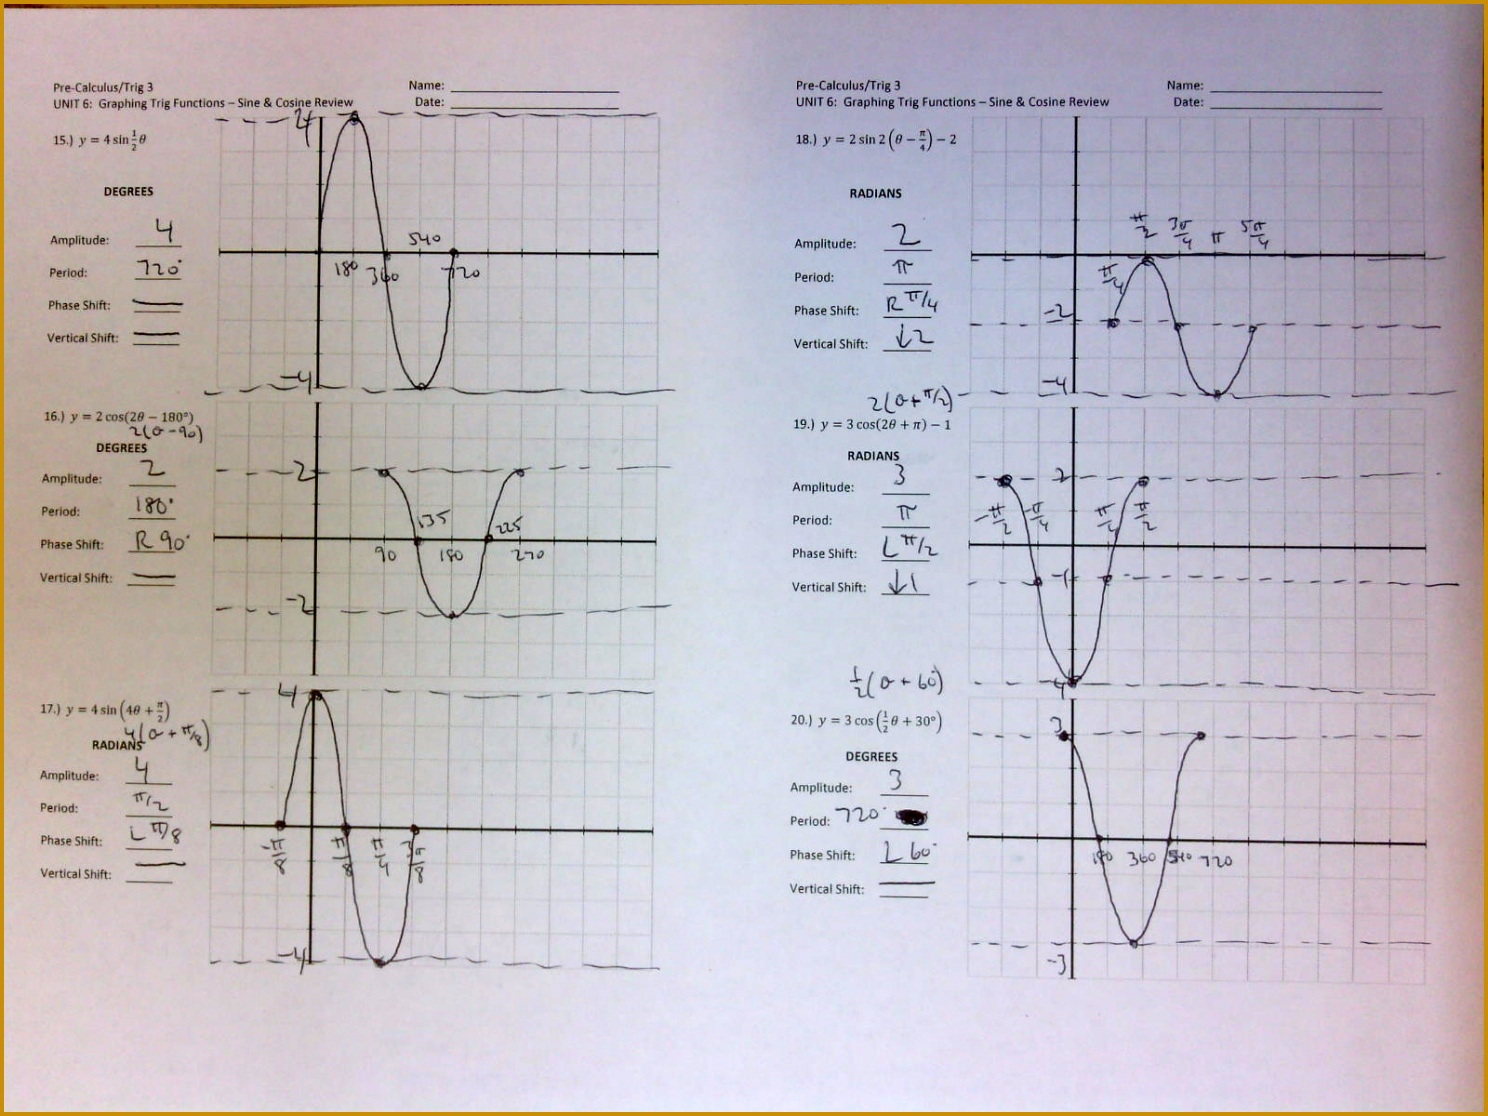 3 Graphing Trig Functions Worksheet With Answers